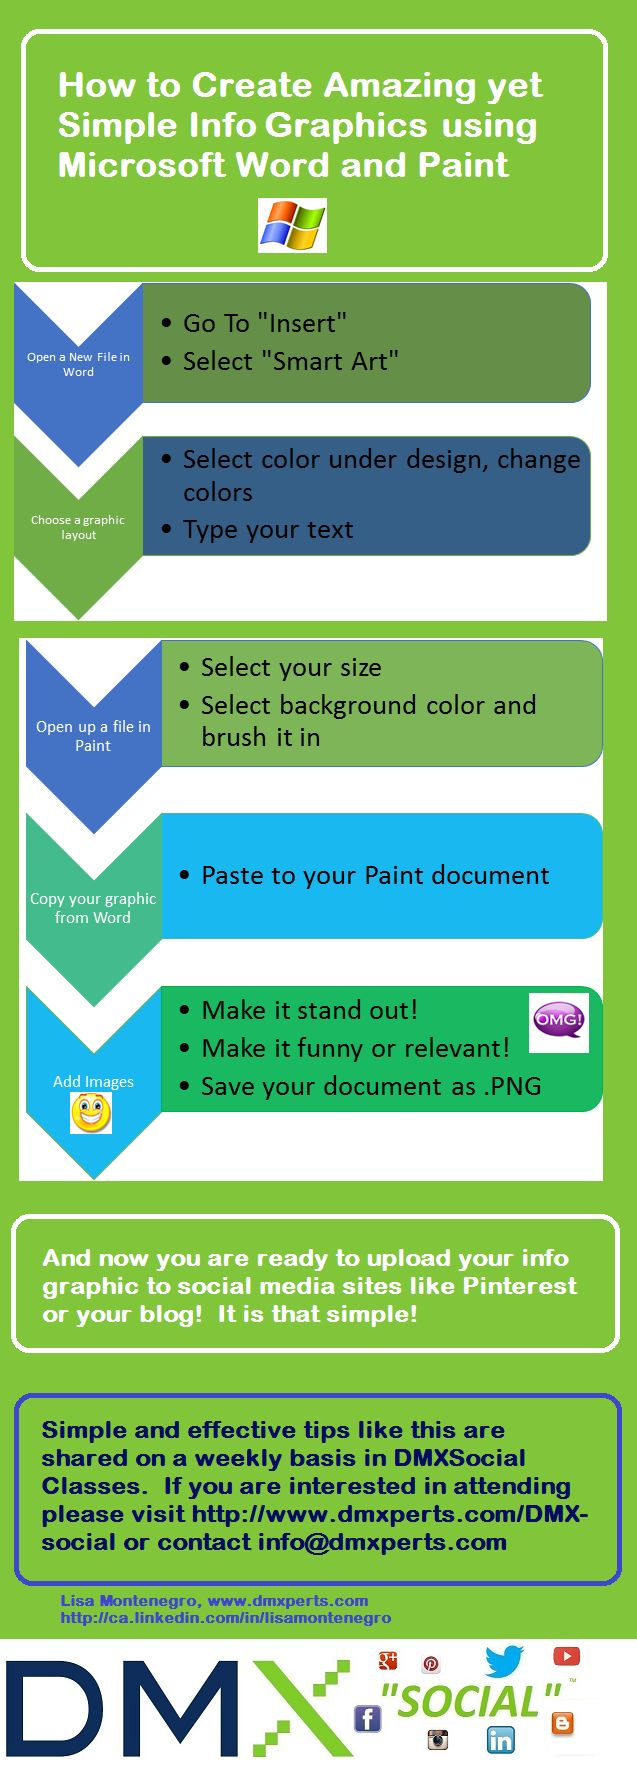 How to Create Amazing, yet simple infographics using Microsoft Word and Paint.